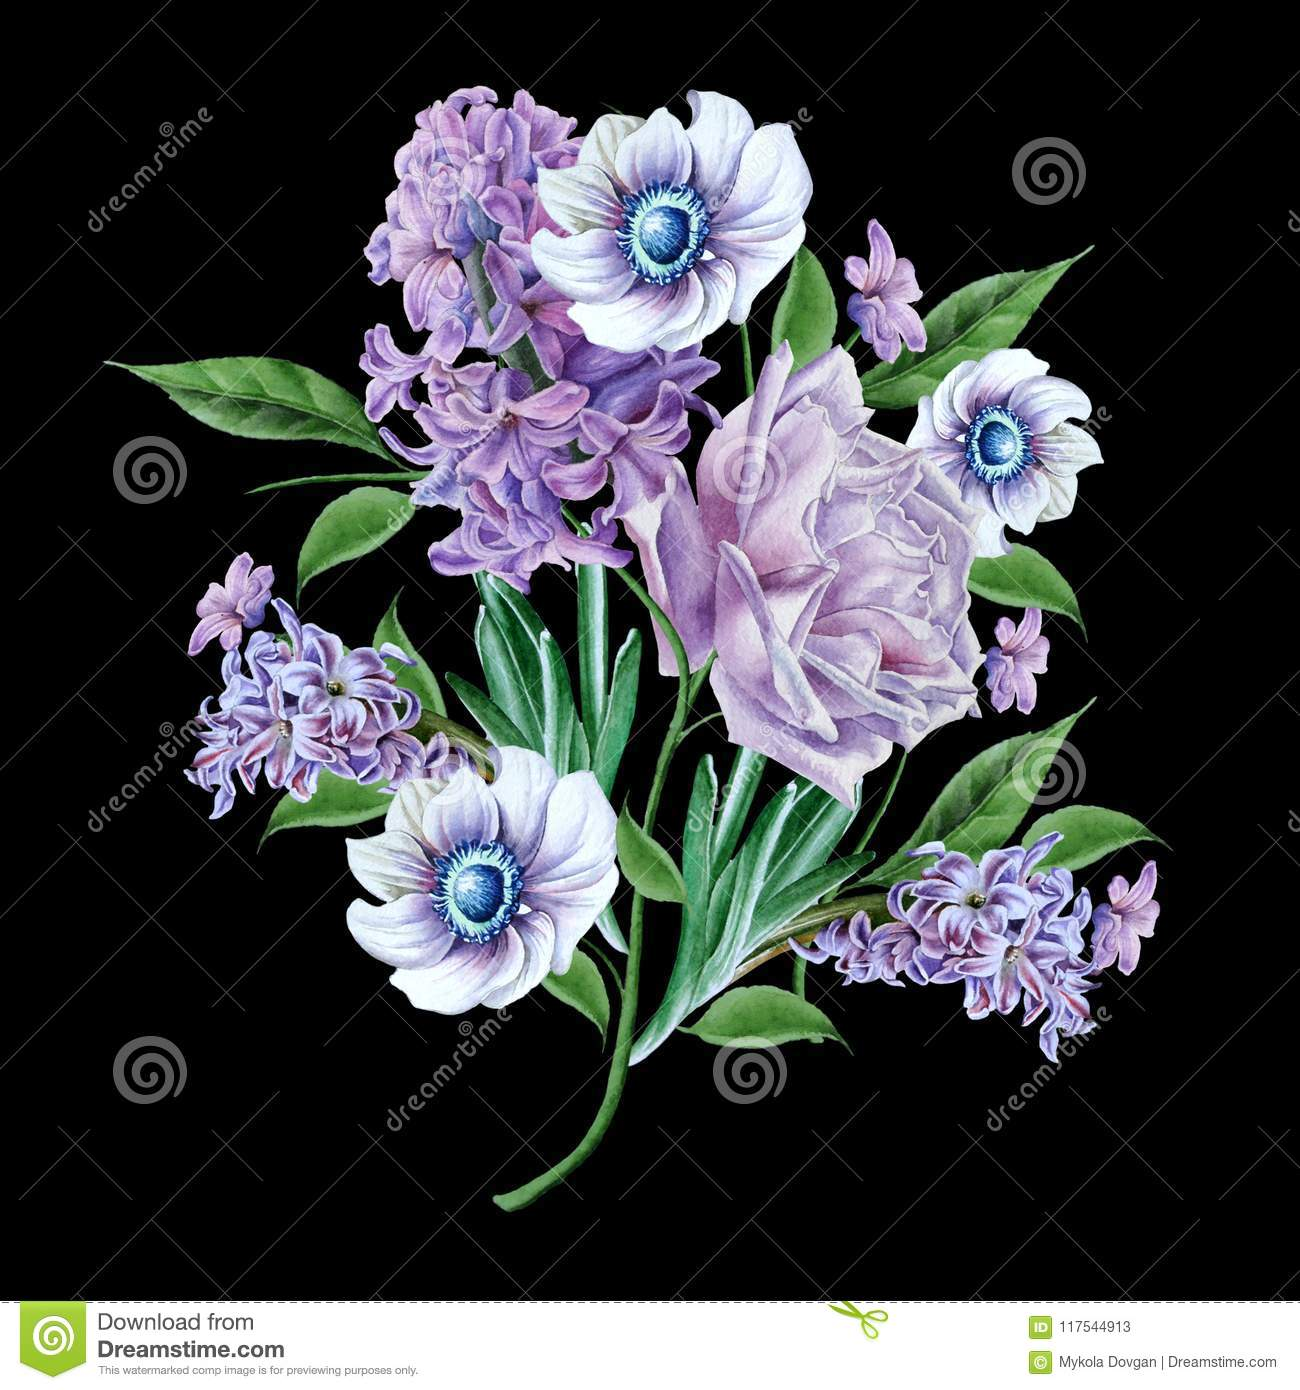 Watercolor bouquet with flowers rose hyacinth anemone stock download watercolor bouquet with flowers rose hyacinth anemone stock illustration illustration izmirmasajfo